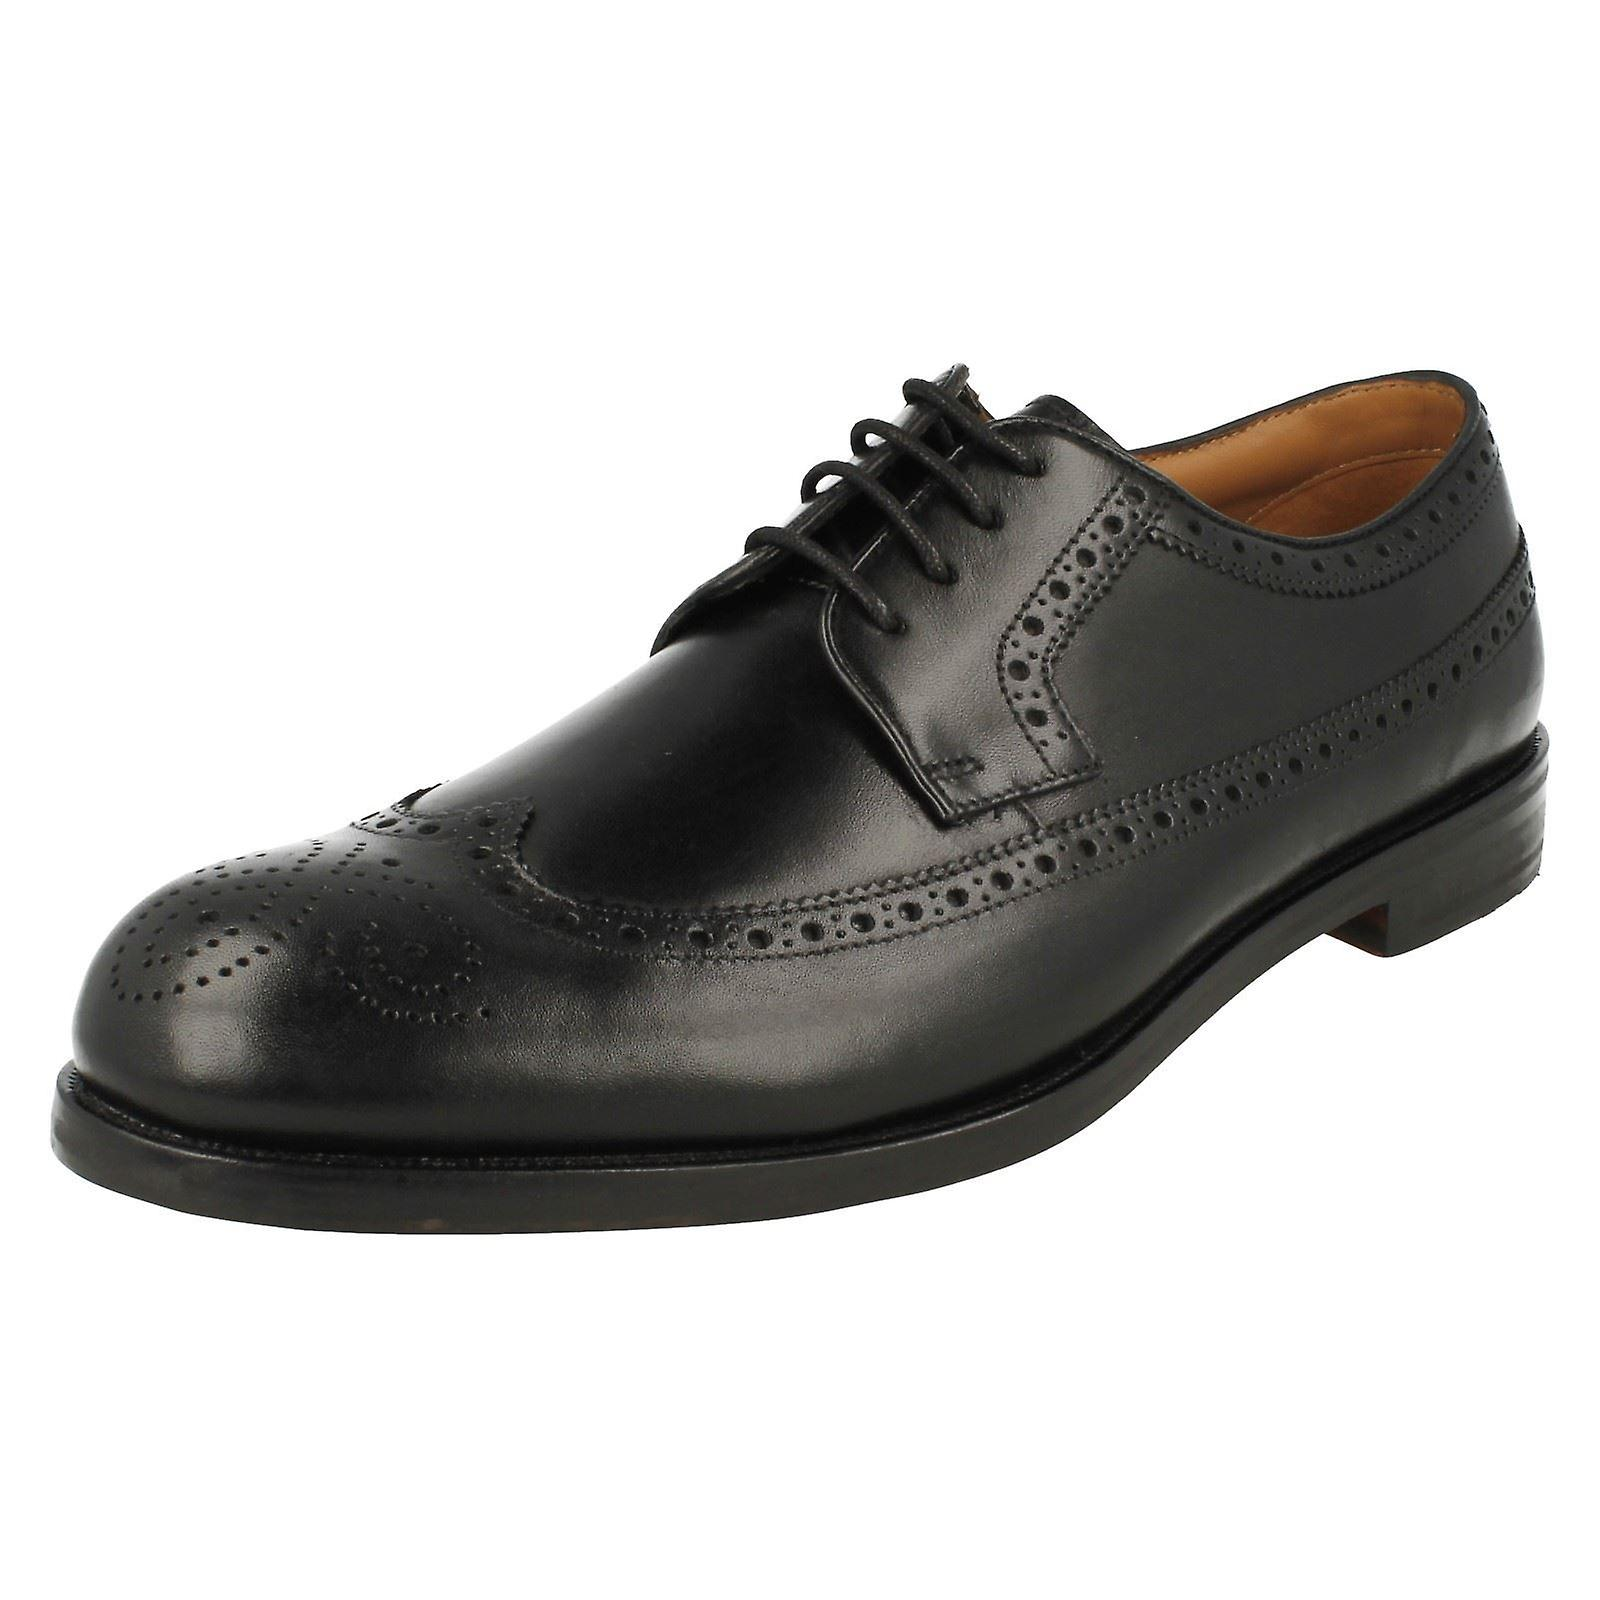 Mens Clarks Formal Brogue Style Lace Up Shoes Coling Limit